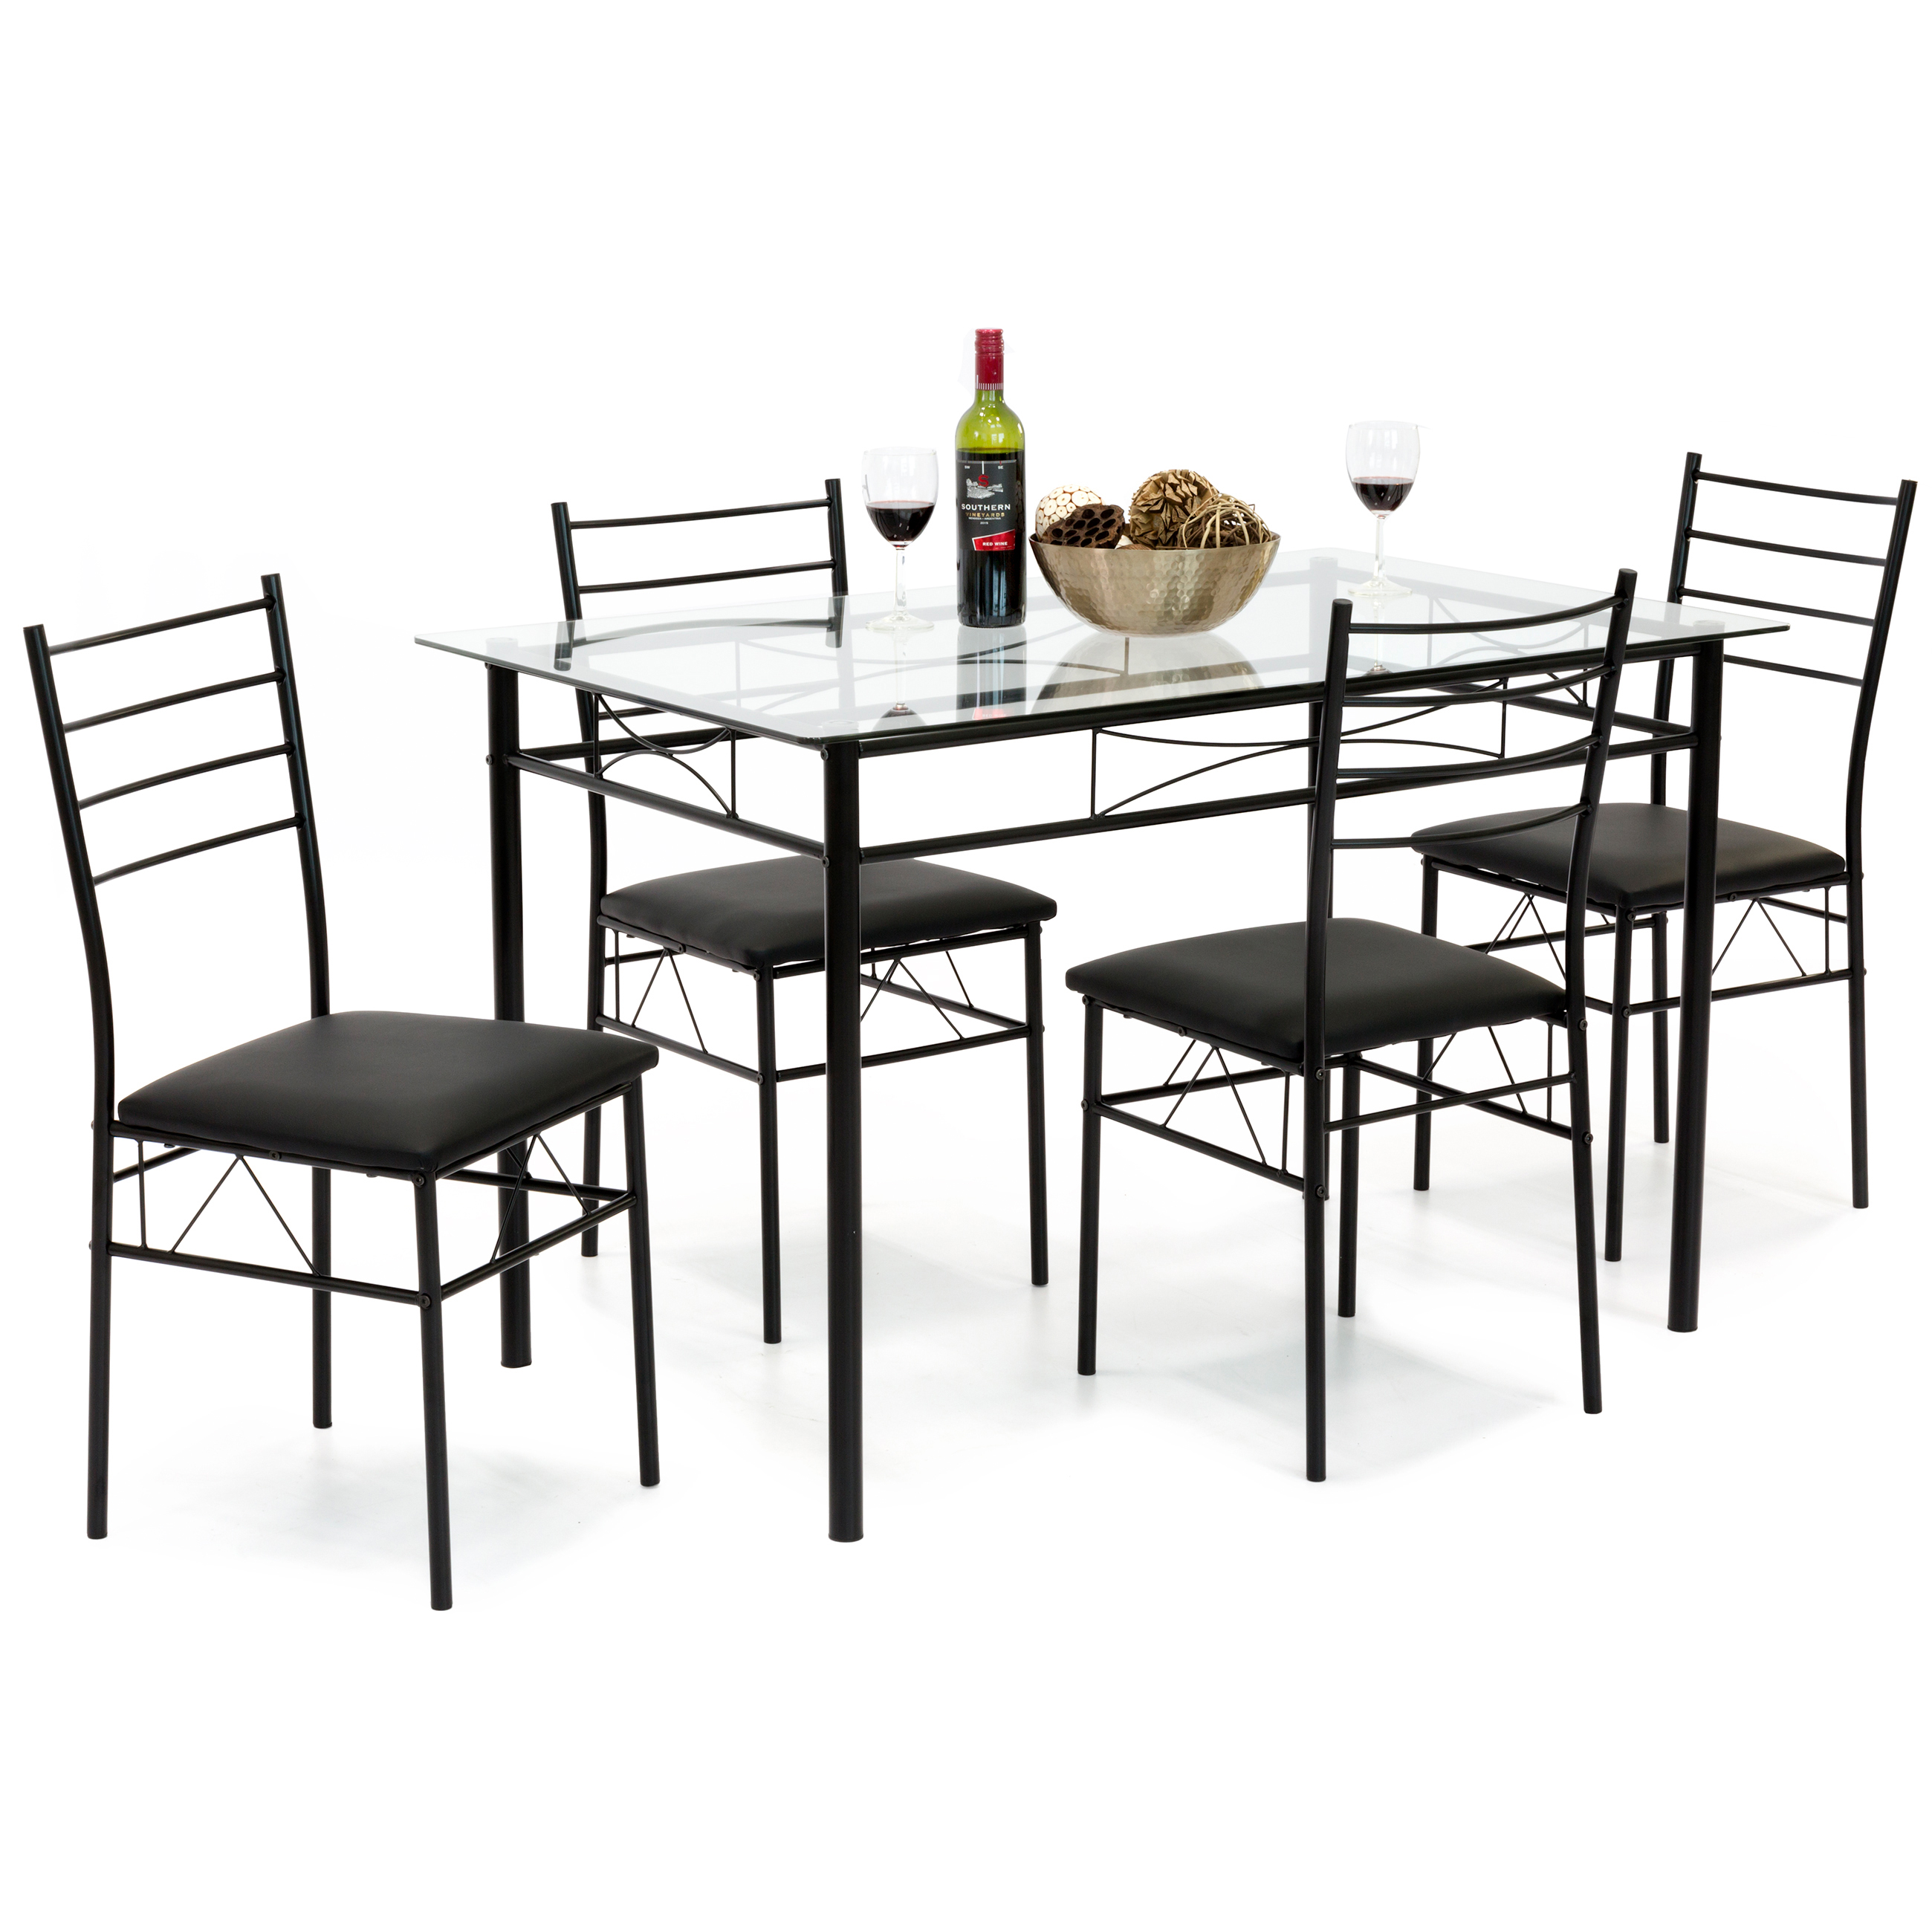 Best Choice Products Home 5-Piece Dining Table Set W  Glass Table Top, 4 Chairs- Black by Best Choice Products